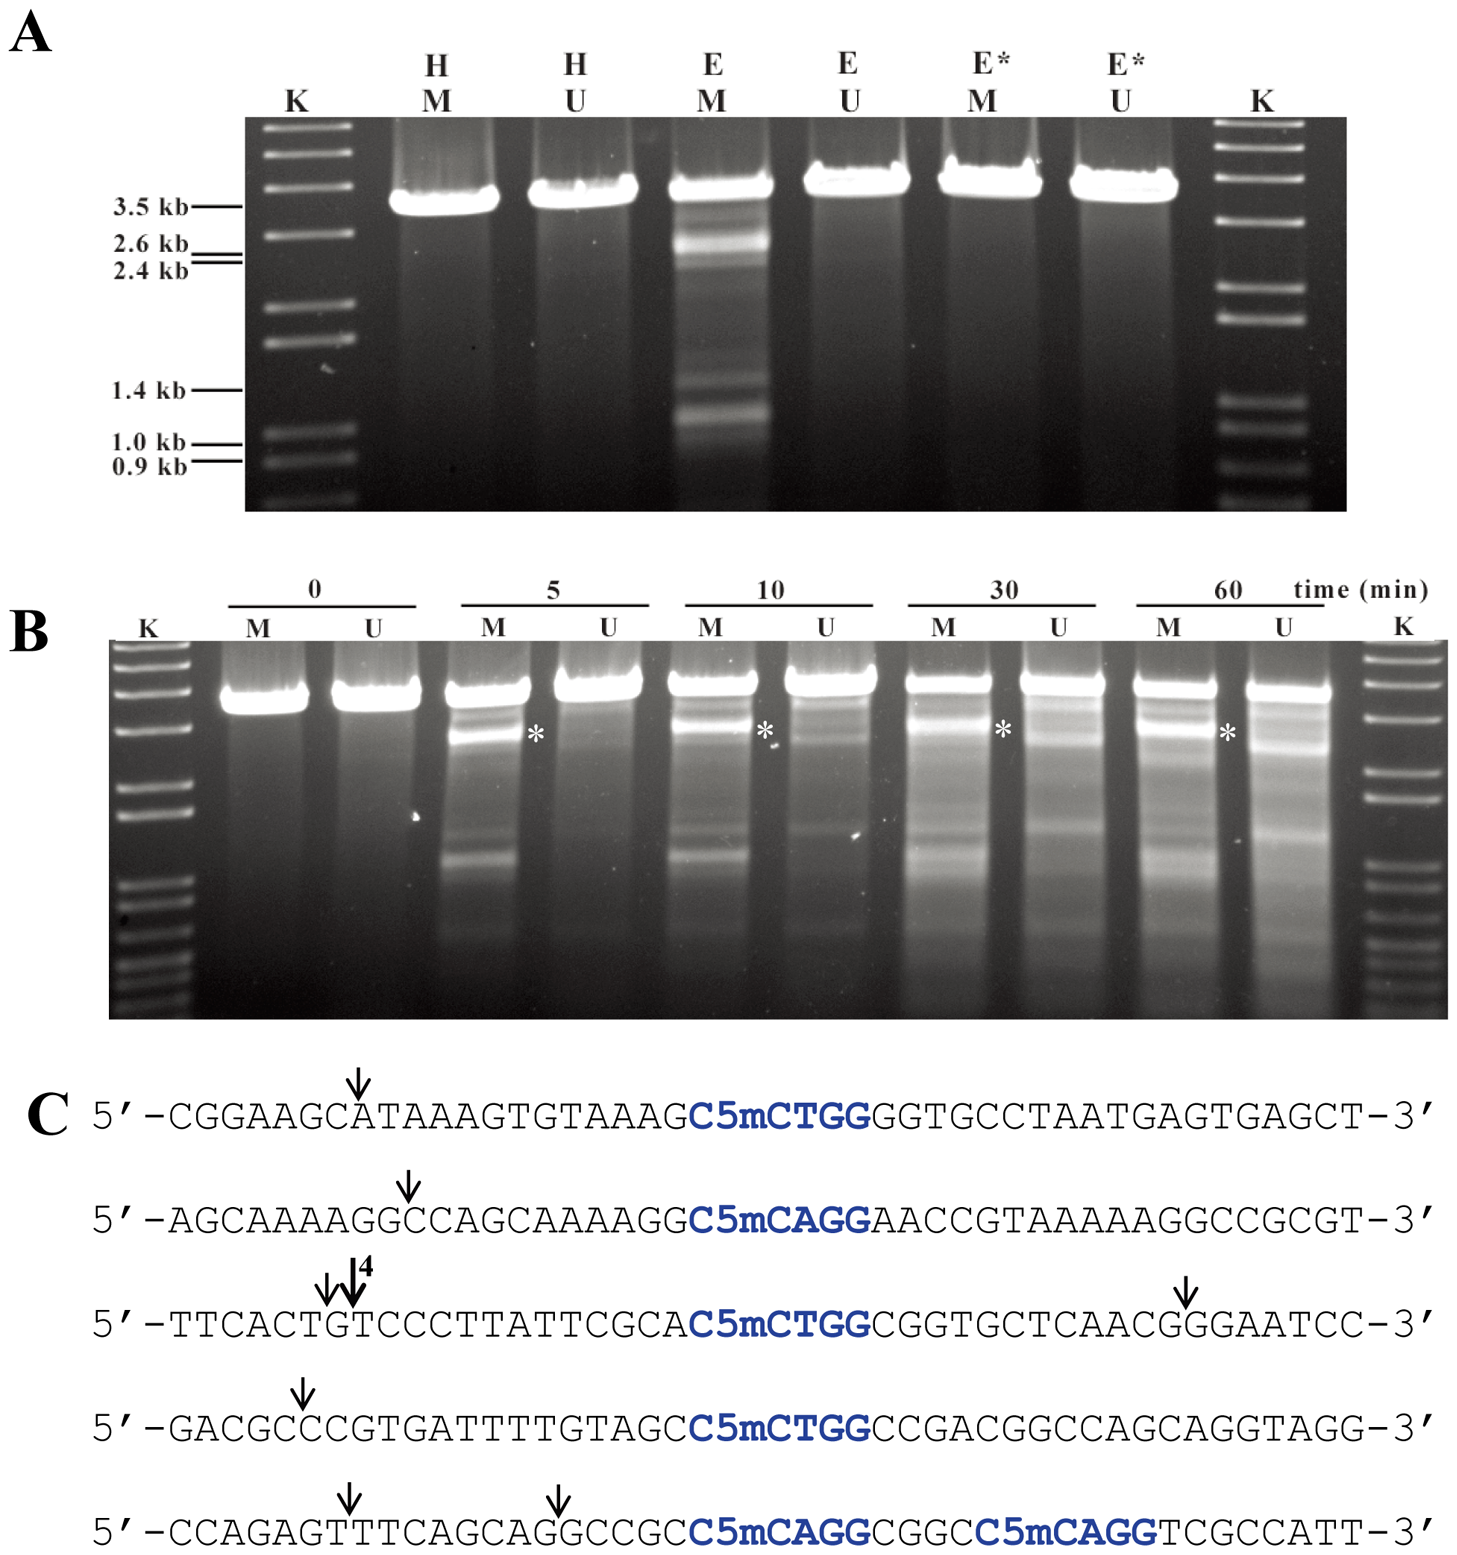 Sco4631-mediated <i>in vitro</i> cleavage of Dcm-methylated plasmid DNA.